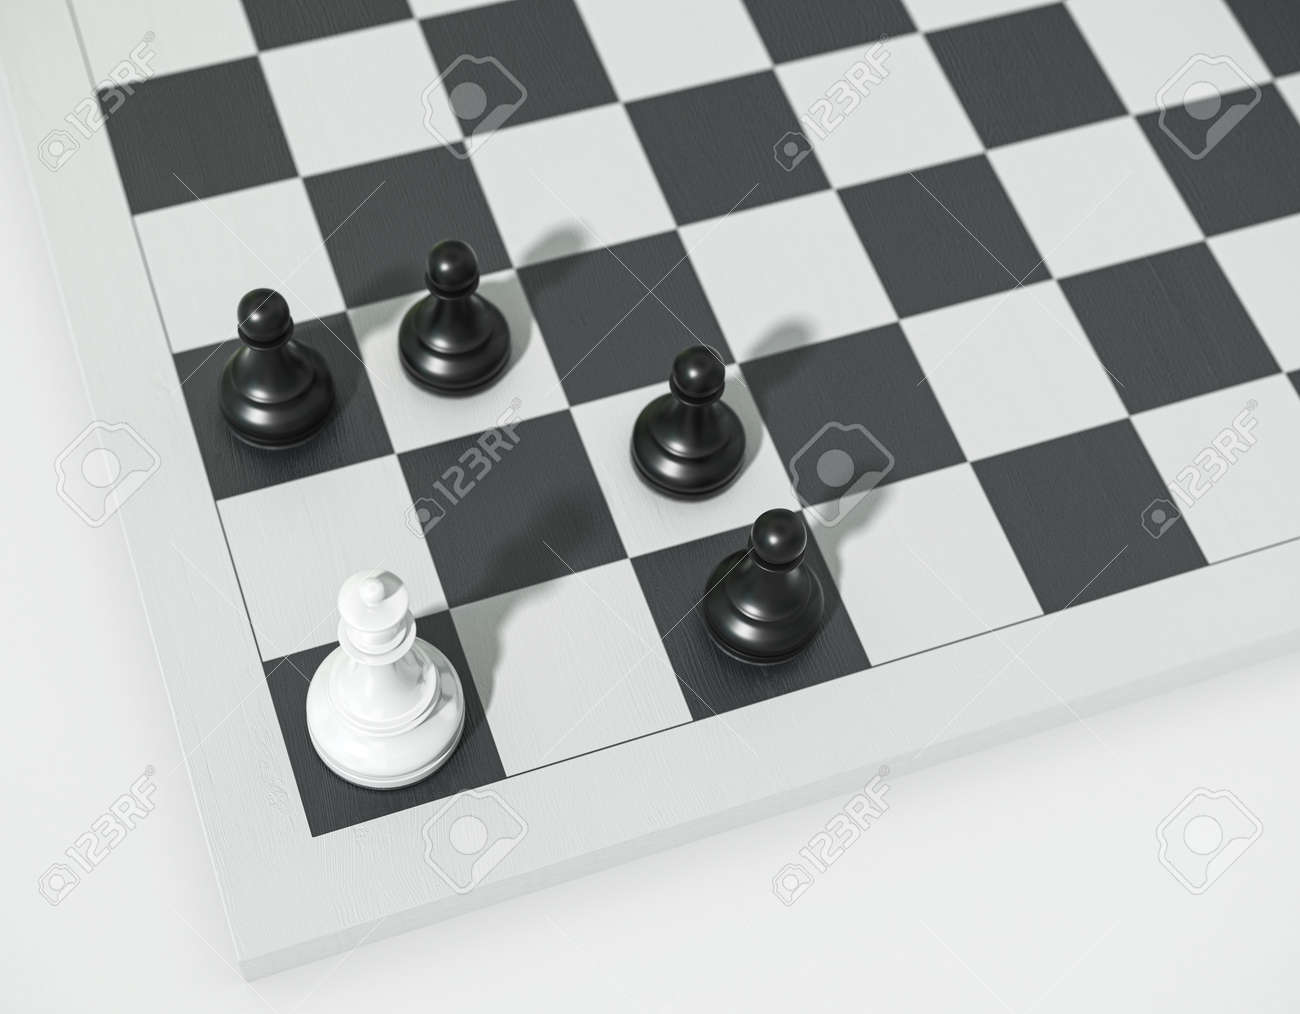 Chess concept, white queen vs black pawns. Queen and pawns on a chessboard 3d render. Chessmen in the corner. - 169603098